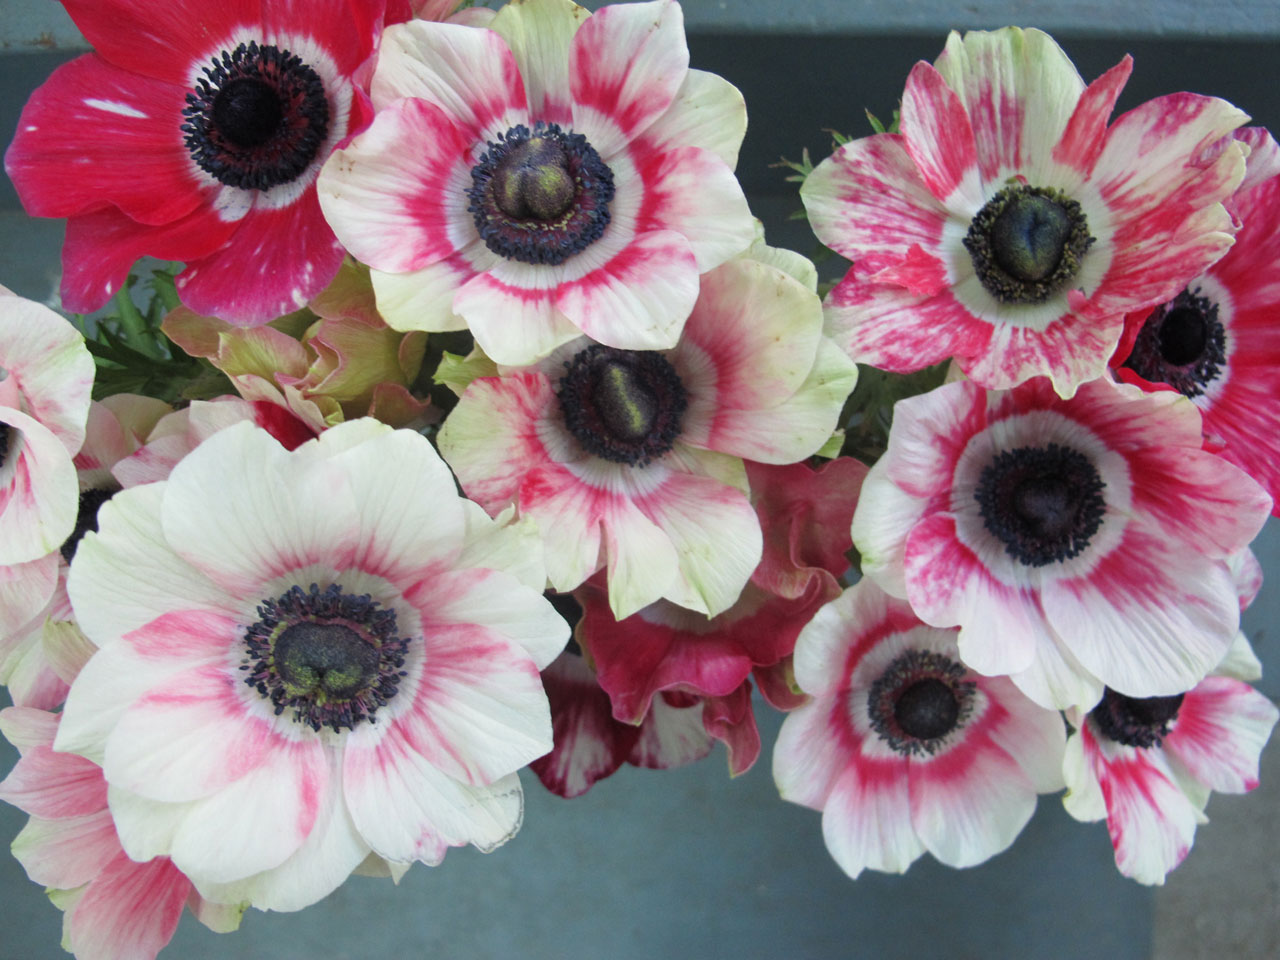 Gorgeous anemones in the HMR Designs Studio